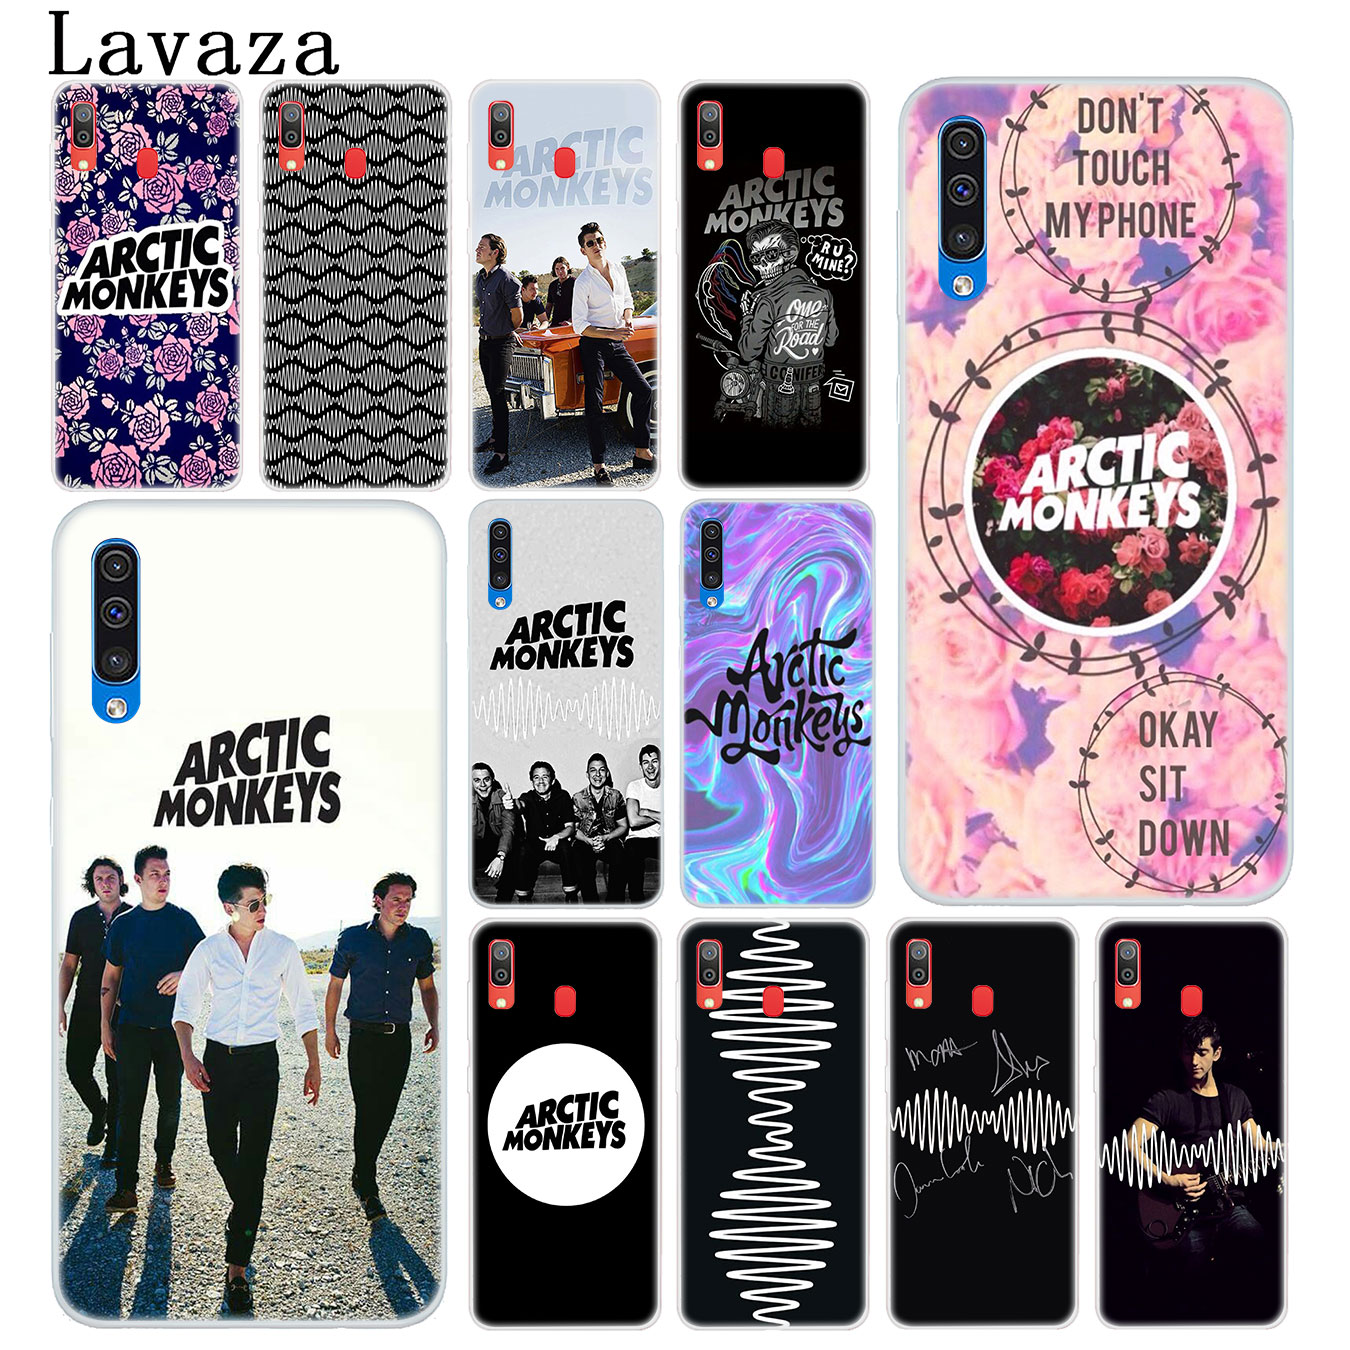 Half-wrapped Case Beautiful Lavaza Arctic Monkeys Cute Hard Transparent Phone Case For Samsung Galaxy A10 A30 A40 A50 A70 M10 M20 M30 Cover Cheap Sales 50% Phone Bags & Cases